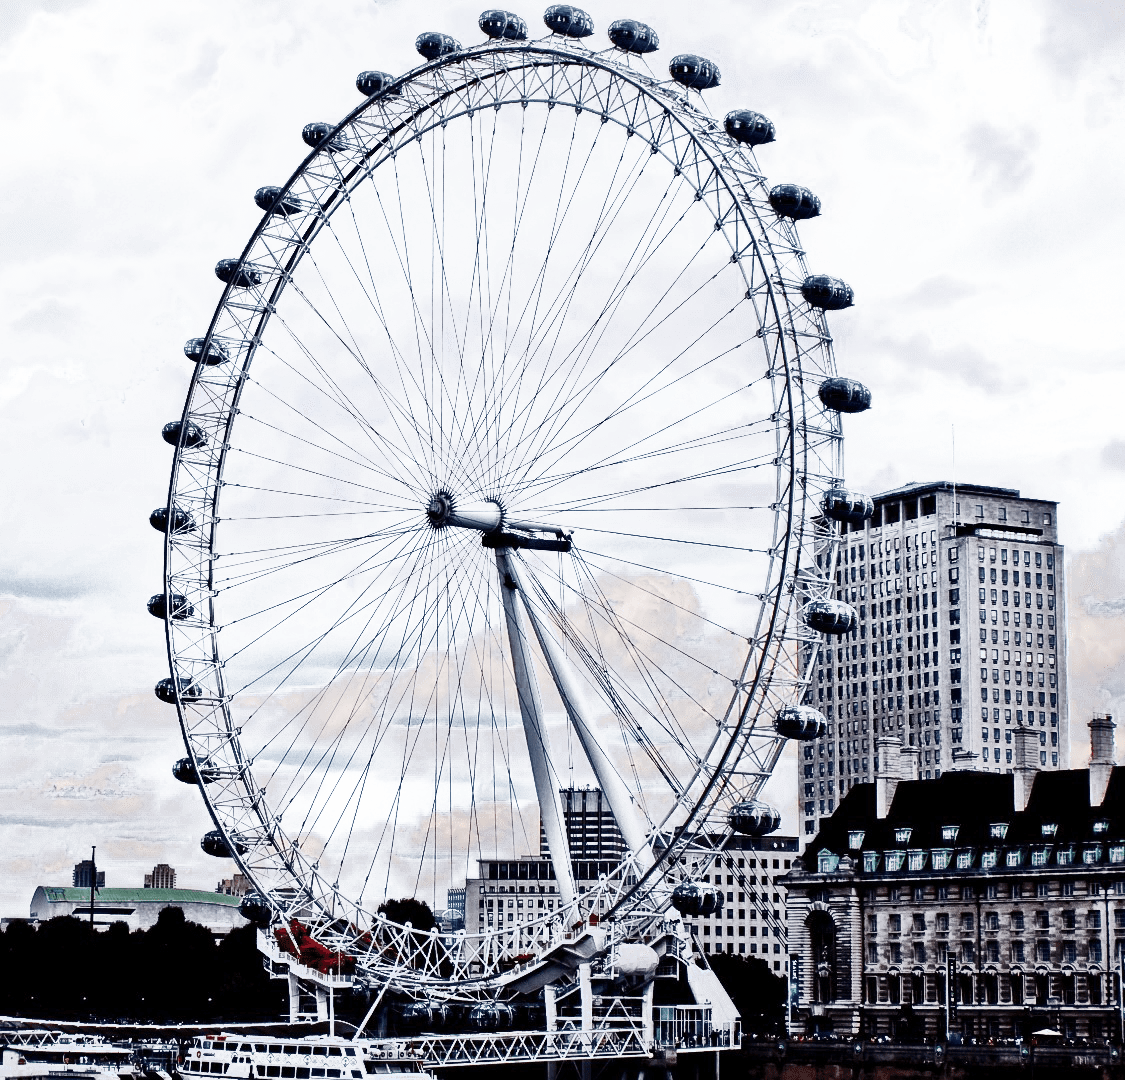 The London Eye transparent background.